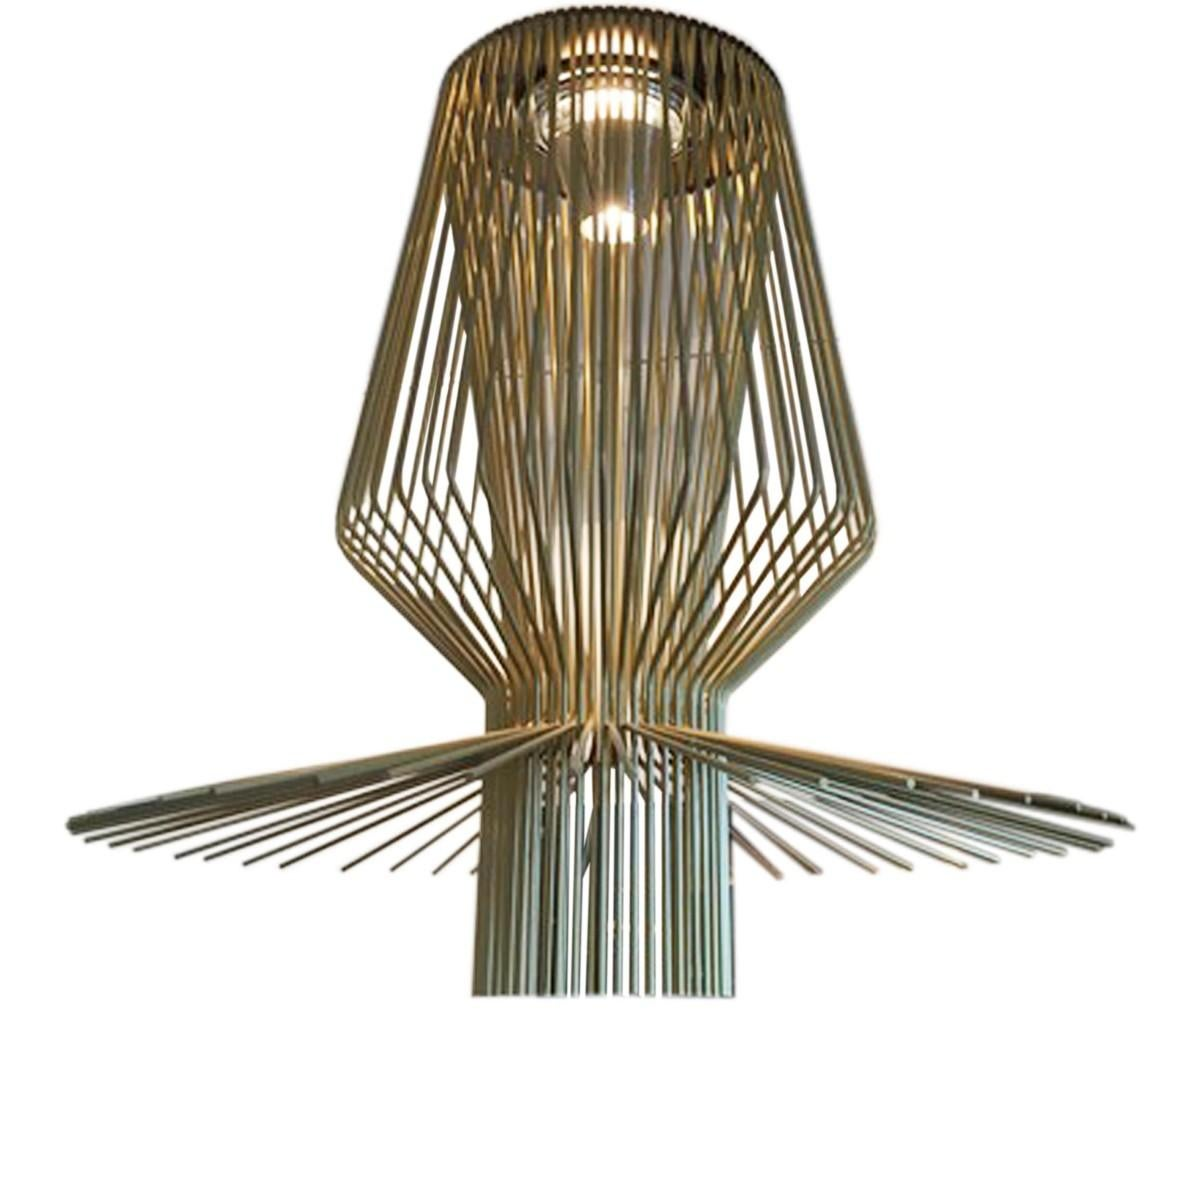 Suspension Chandelier Allegro Assai Suspension Chandelier By Atelier Oi From Foscarini Large Size